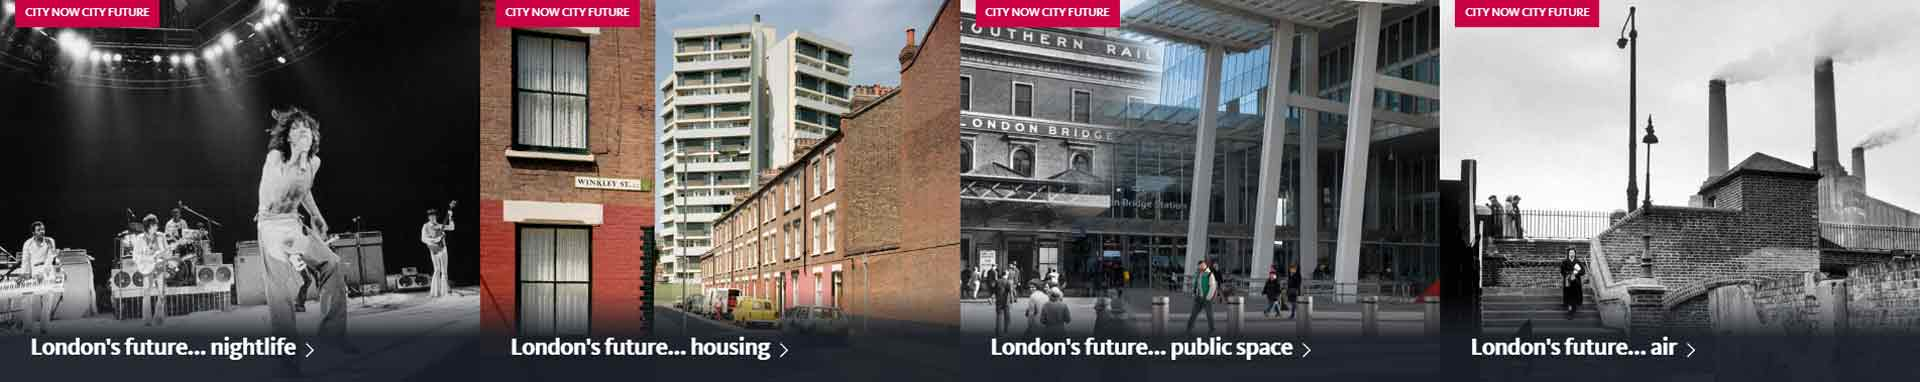 Articles from the London's future series